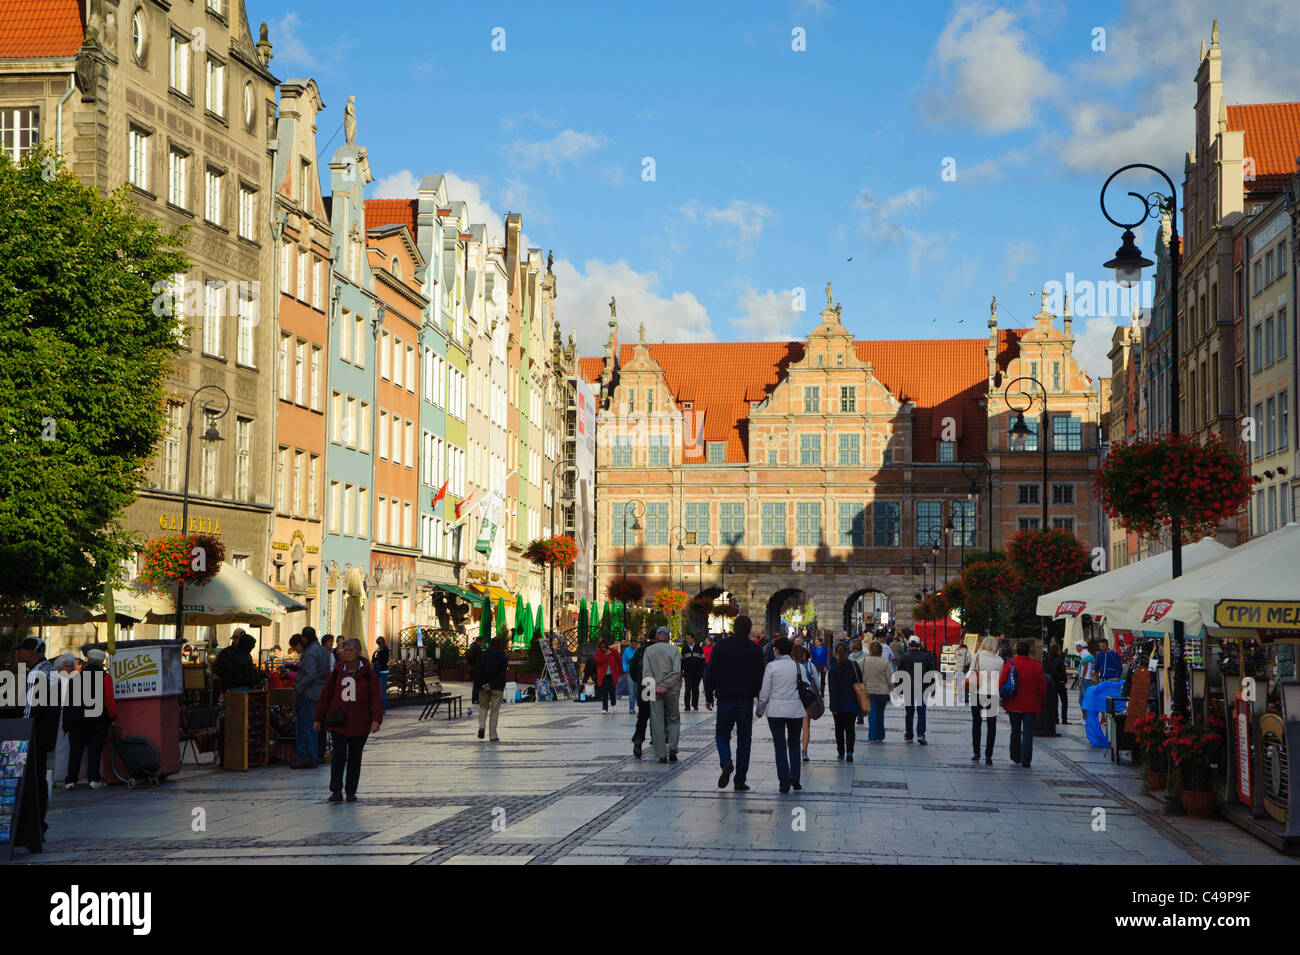 Długi Targ (the long market), centre of the old town in Gdansk, Poland - Stock Image